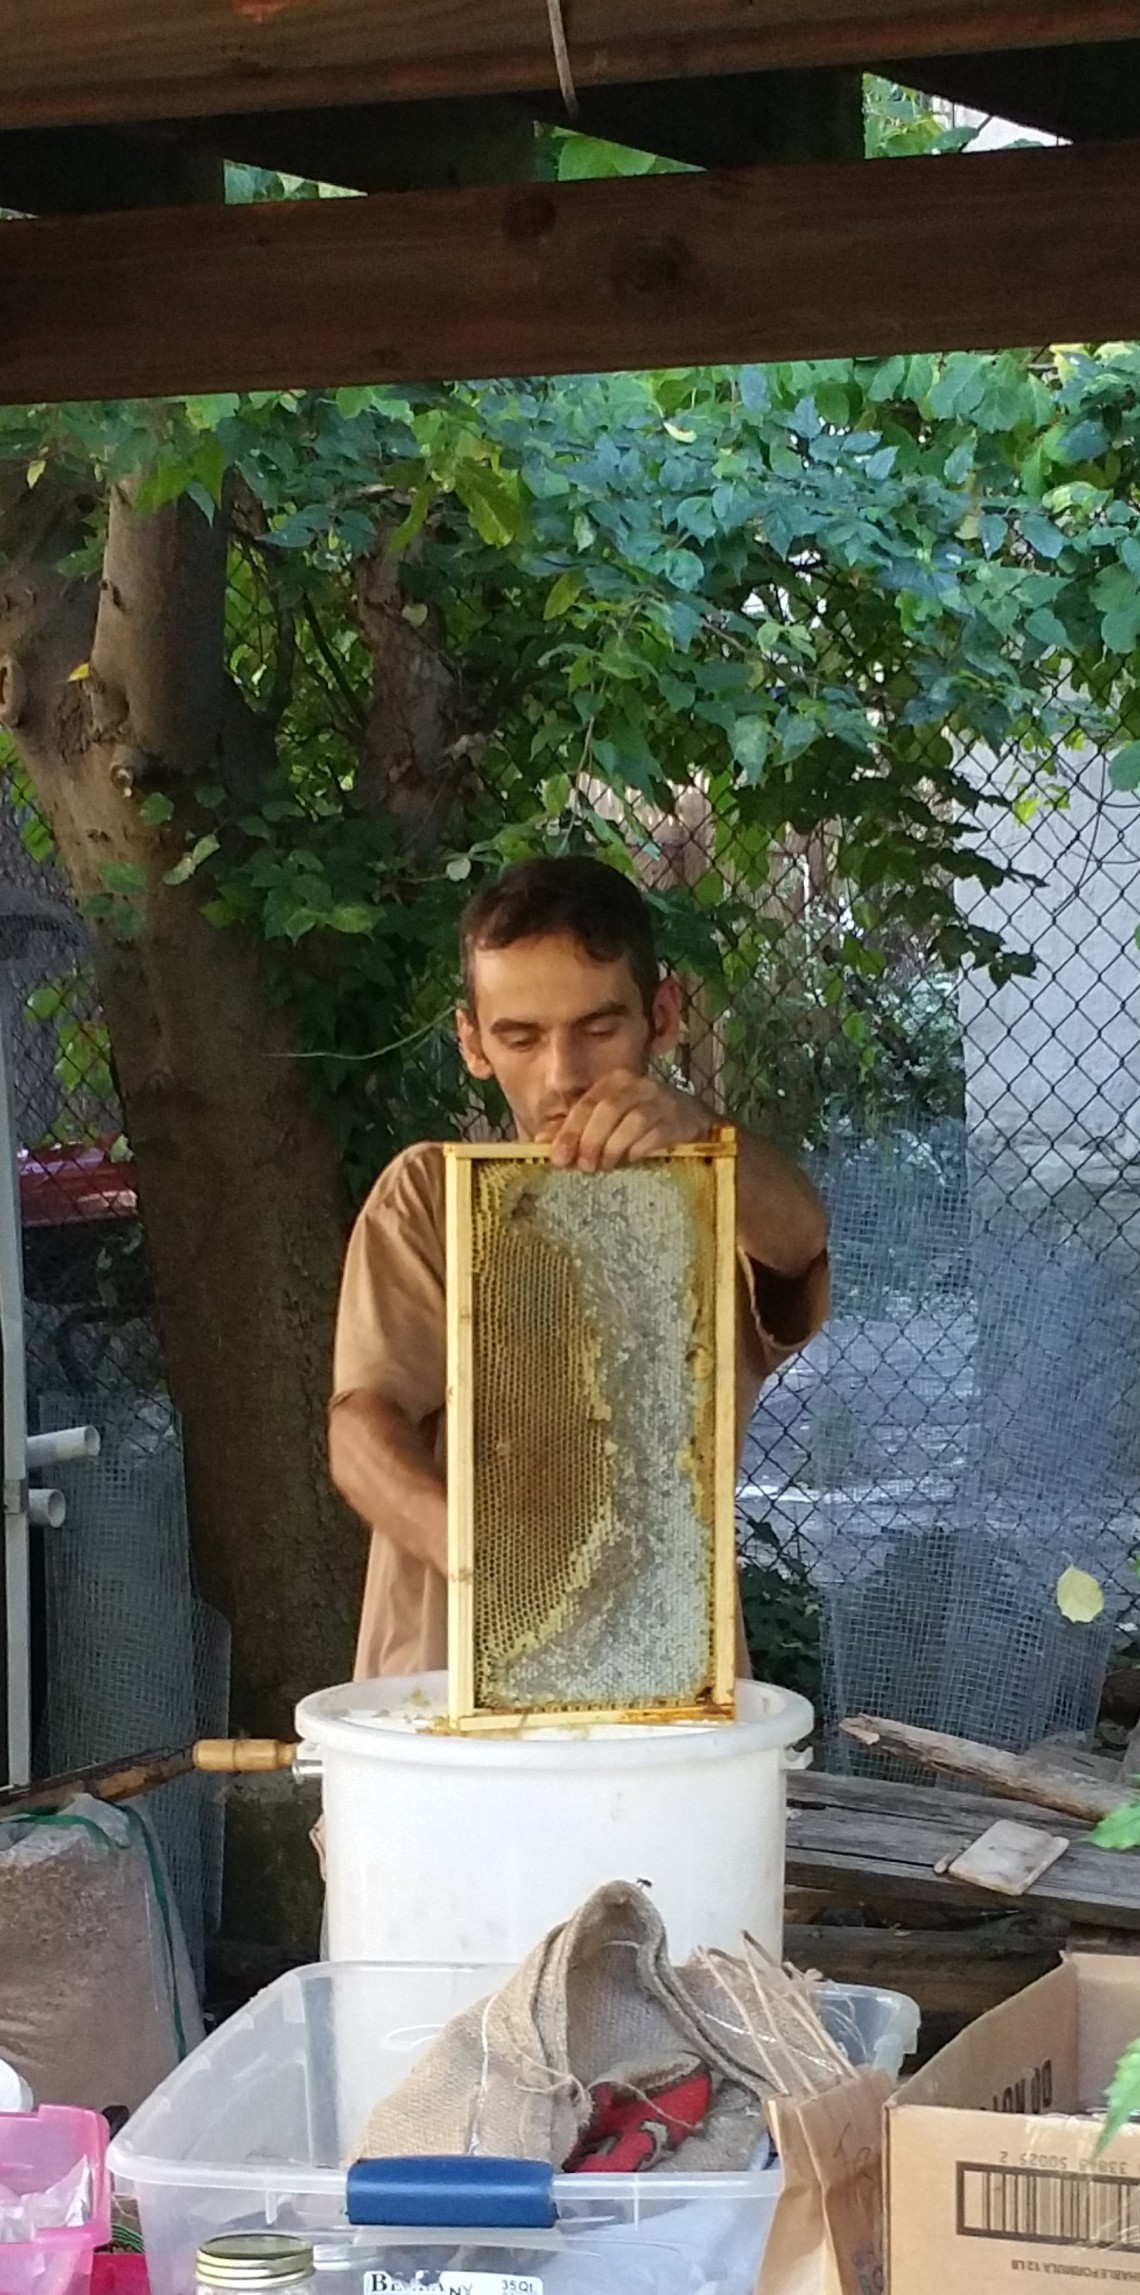 Honey collected from beehive at 462 Halsey Street Garden, Bklyn